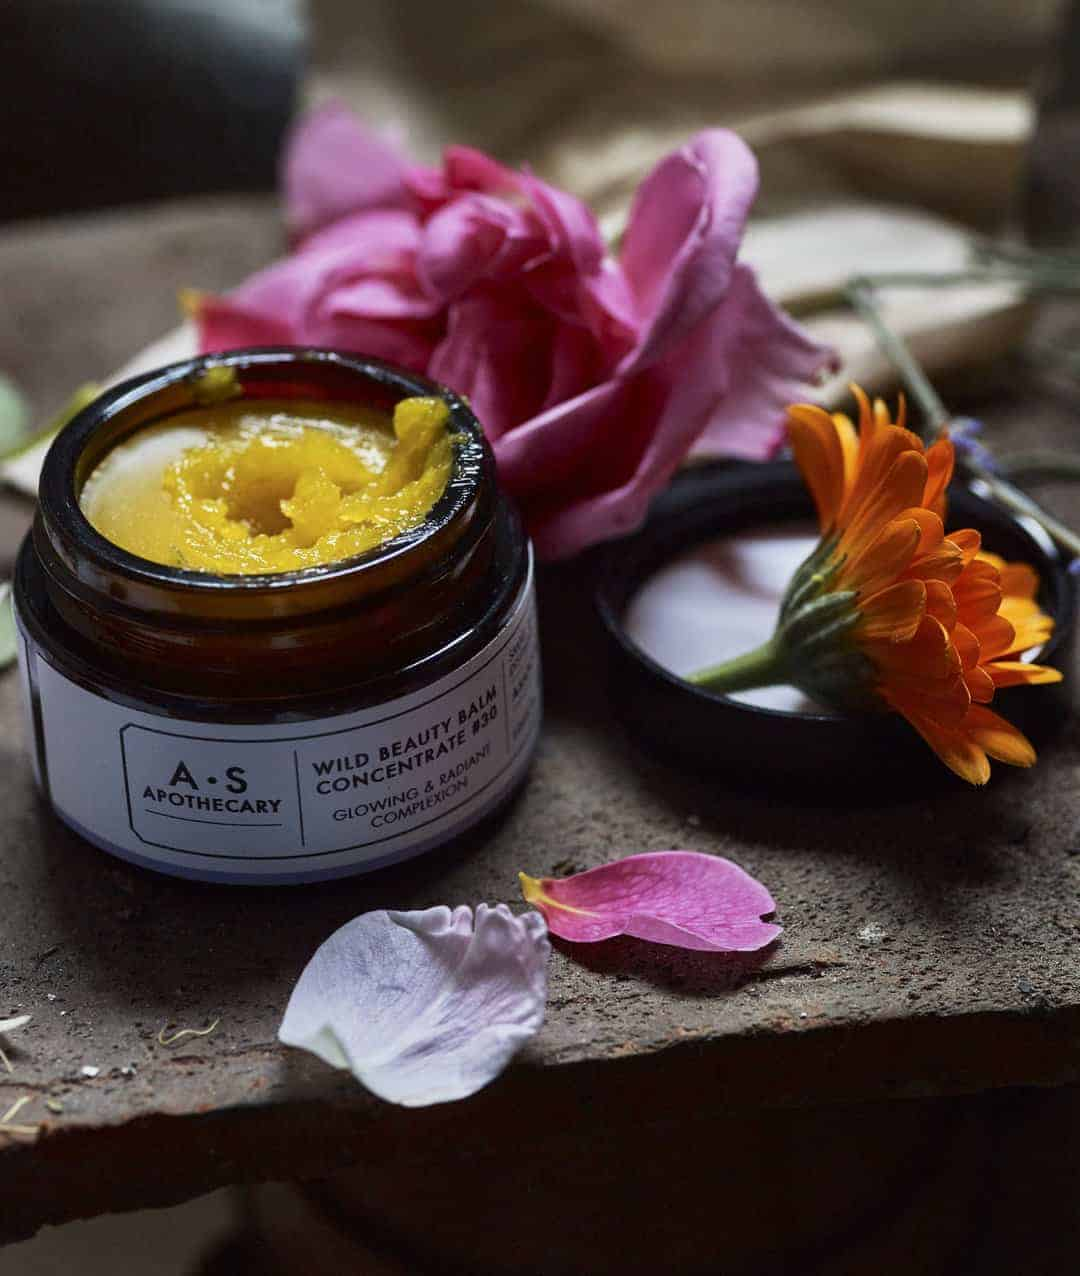 love this small batch natural wild beauty face cream by A S Apothecary. Click through for more ethical gift ideas for Christmas you'll love #ShopEhicalInstead #ethicalgifts #madeinbritain #frombritainwithlove #sustainablegifts #ethicalhour #zerowaste